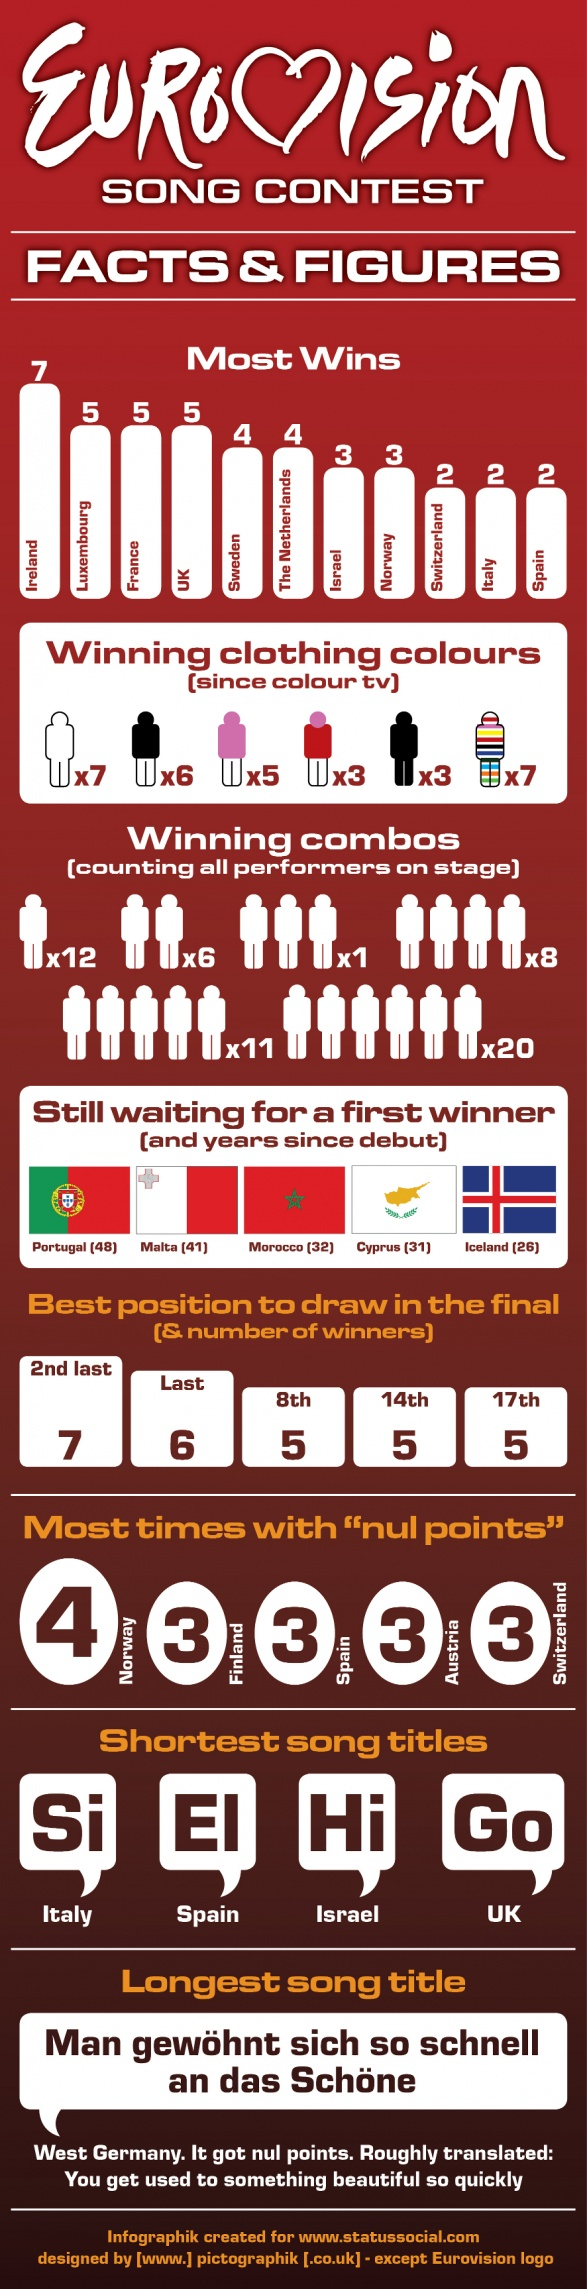 austria eurovision facts